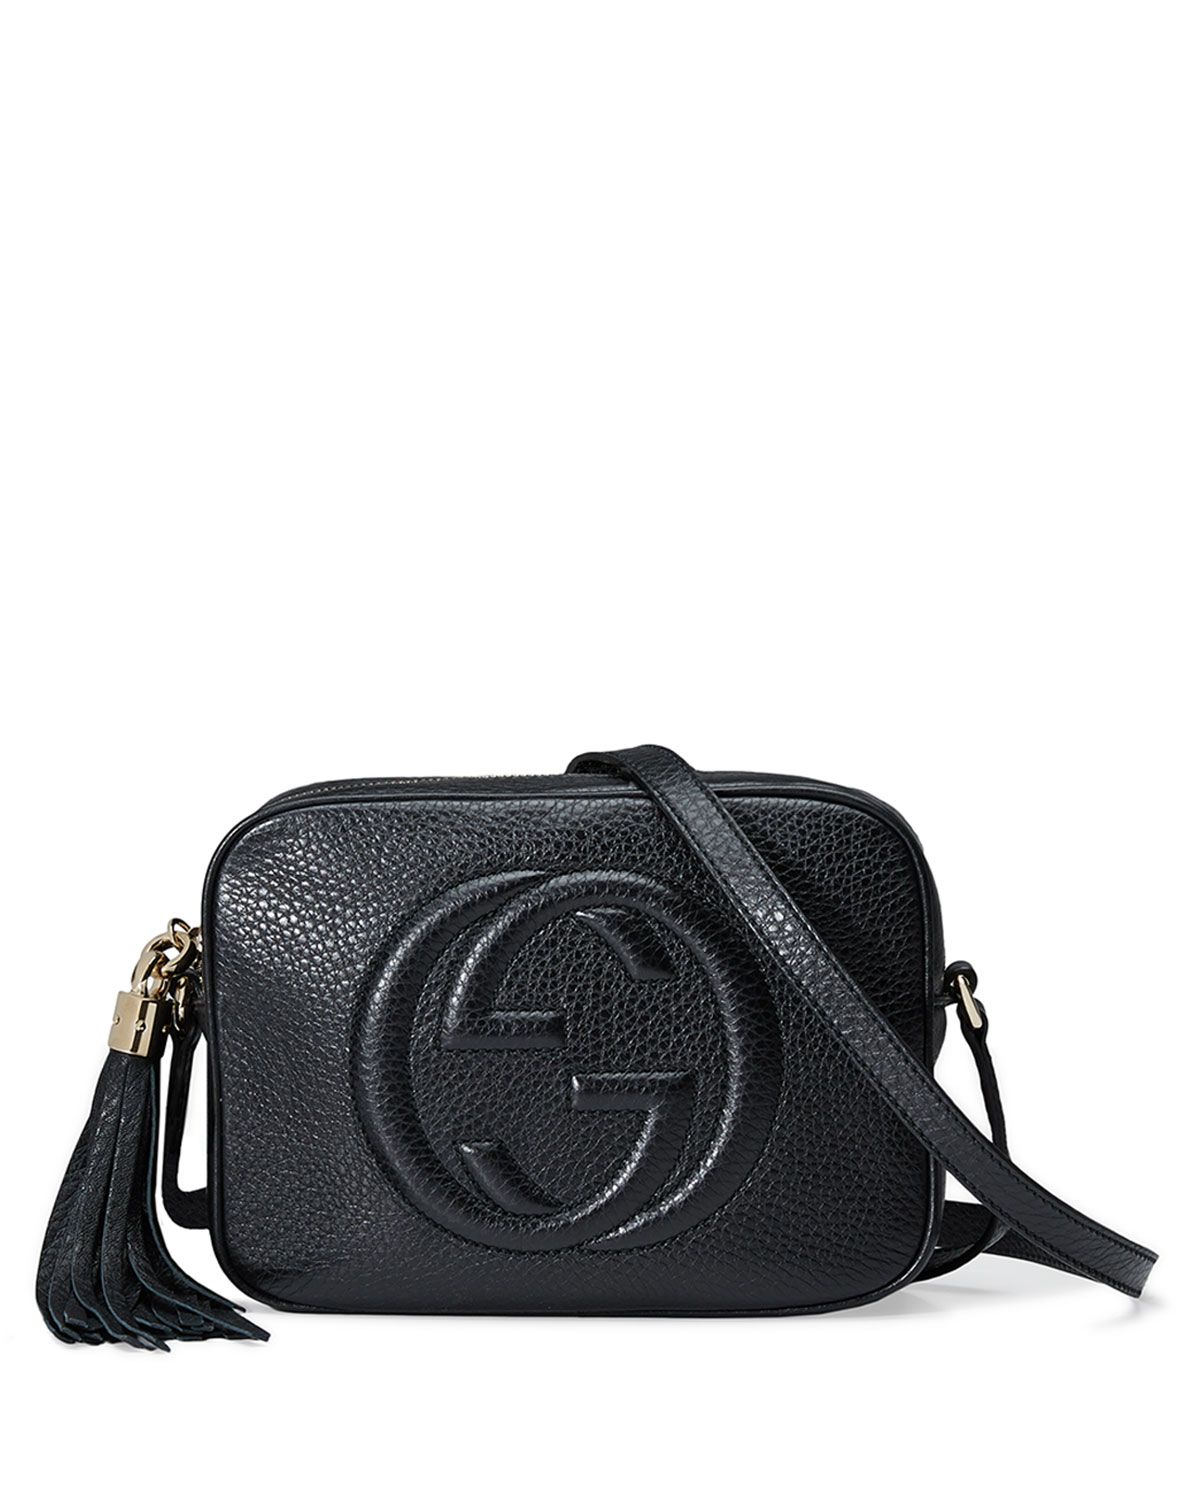 17c80fd4867f Gucci Soho Leather Disco Bag, Black | Neiman Marcus